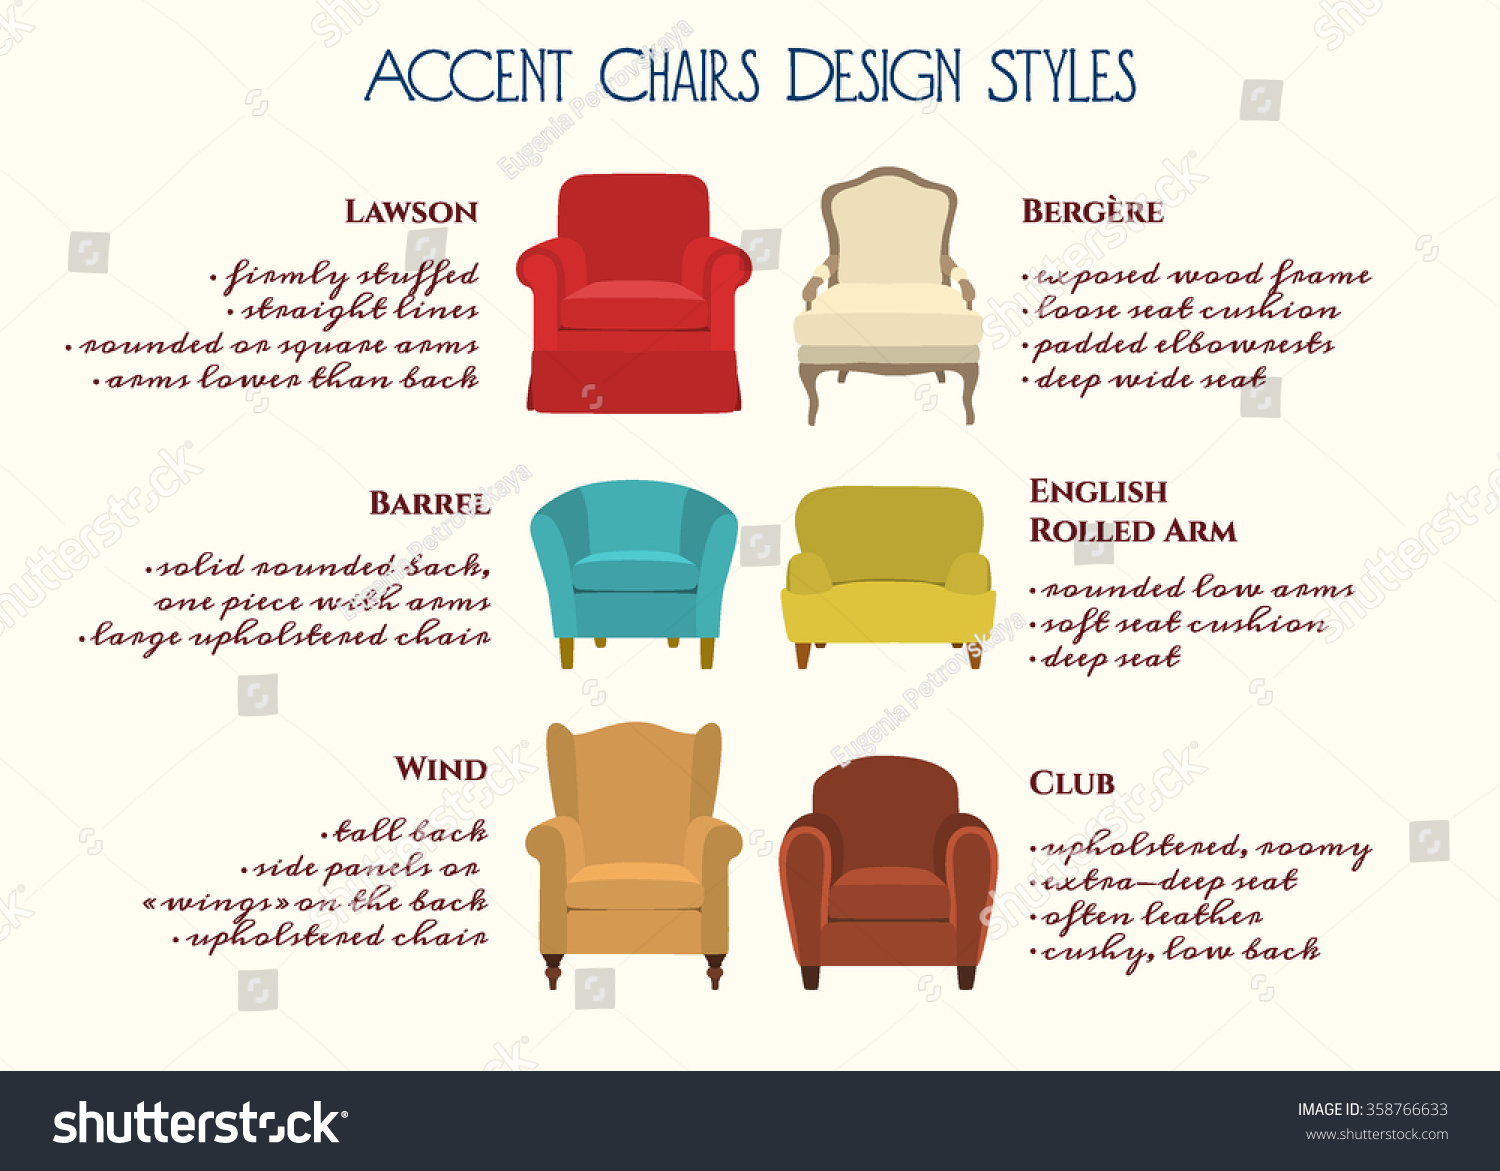 Vector infographic accent chairs design styles stock for All types of chairs